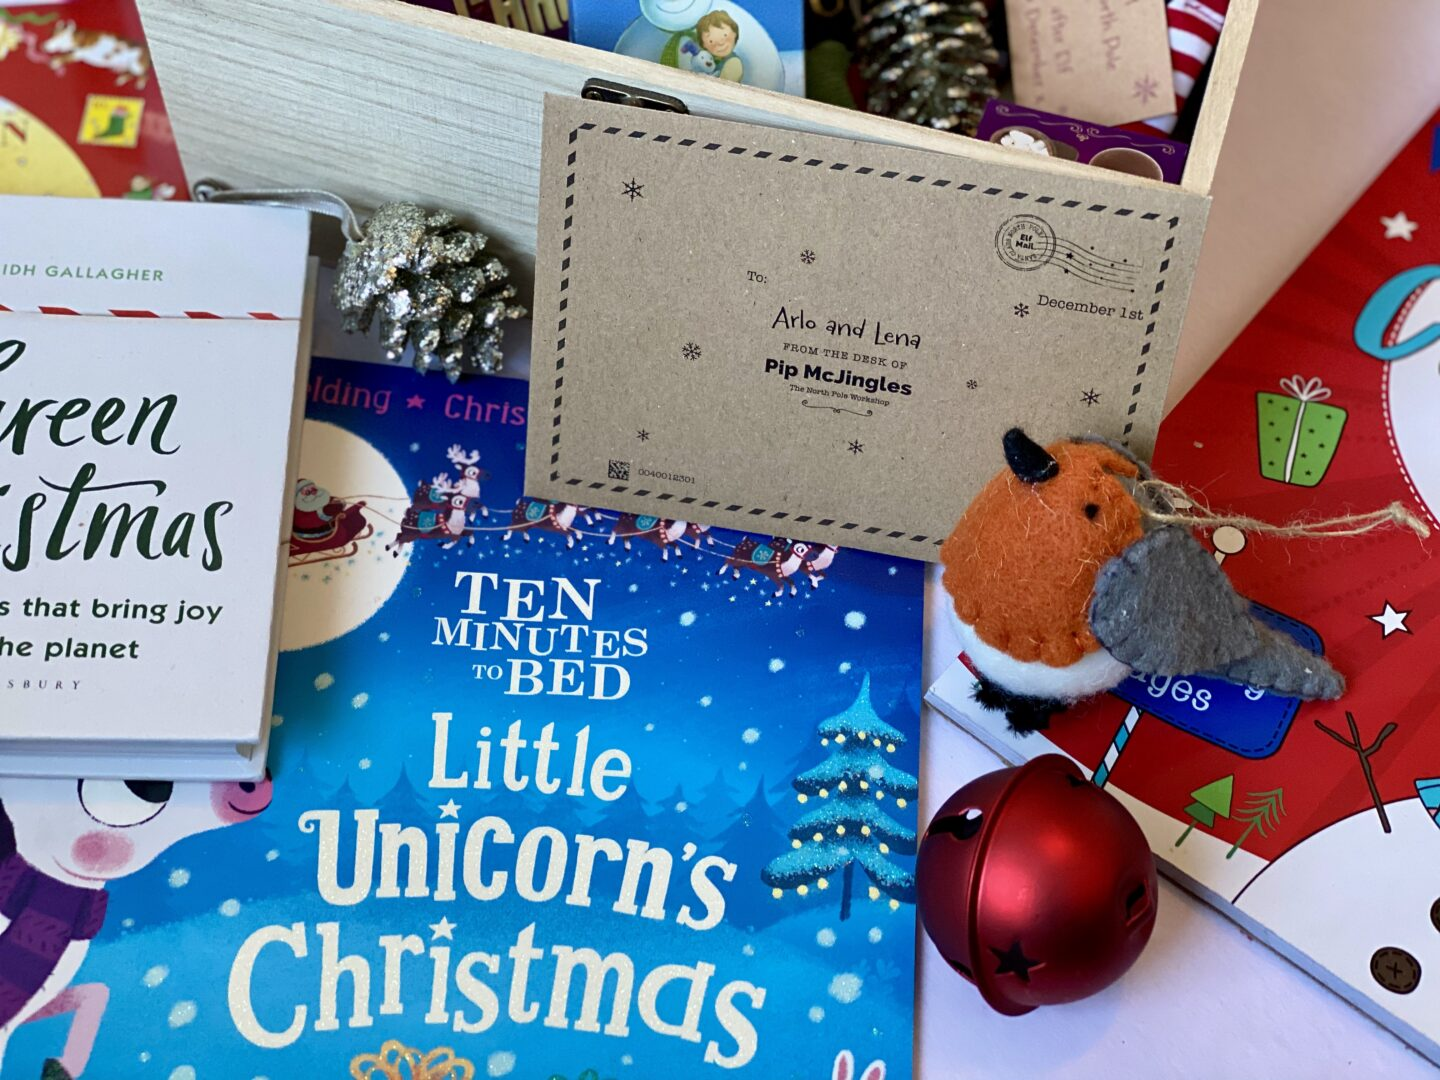 Some Christmas items including an advent letter